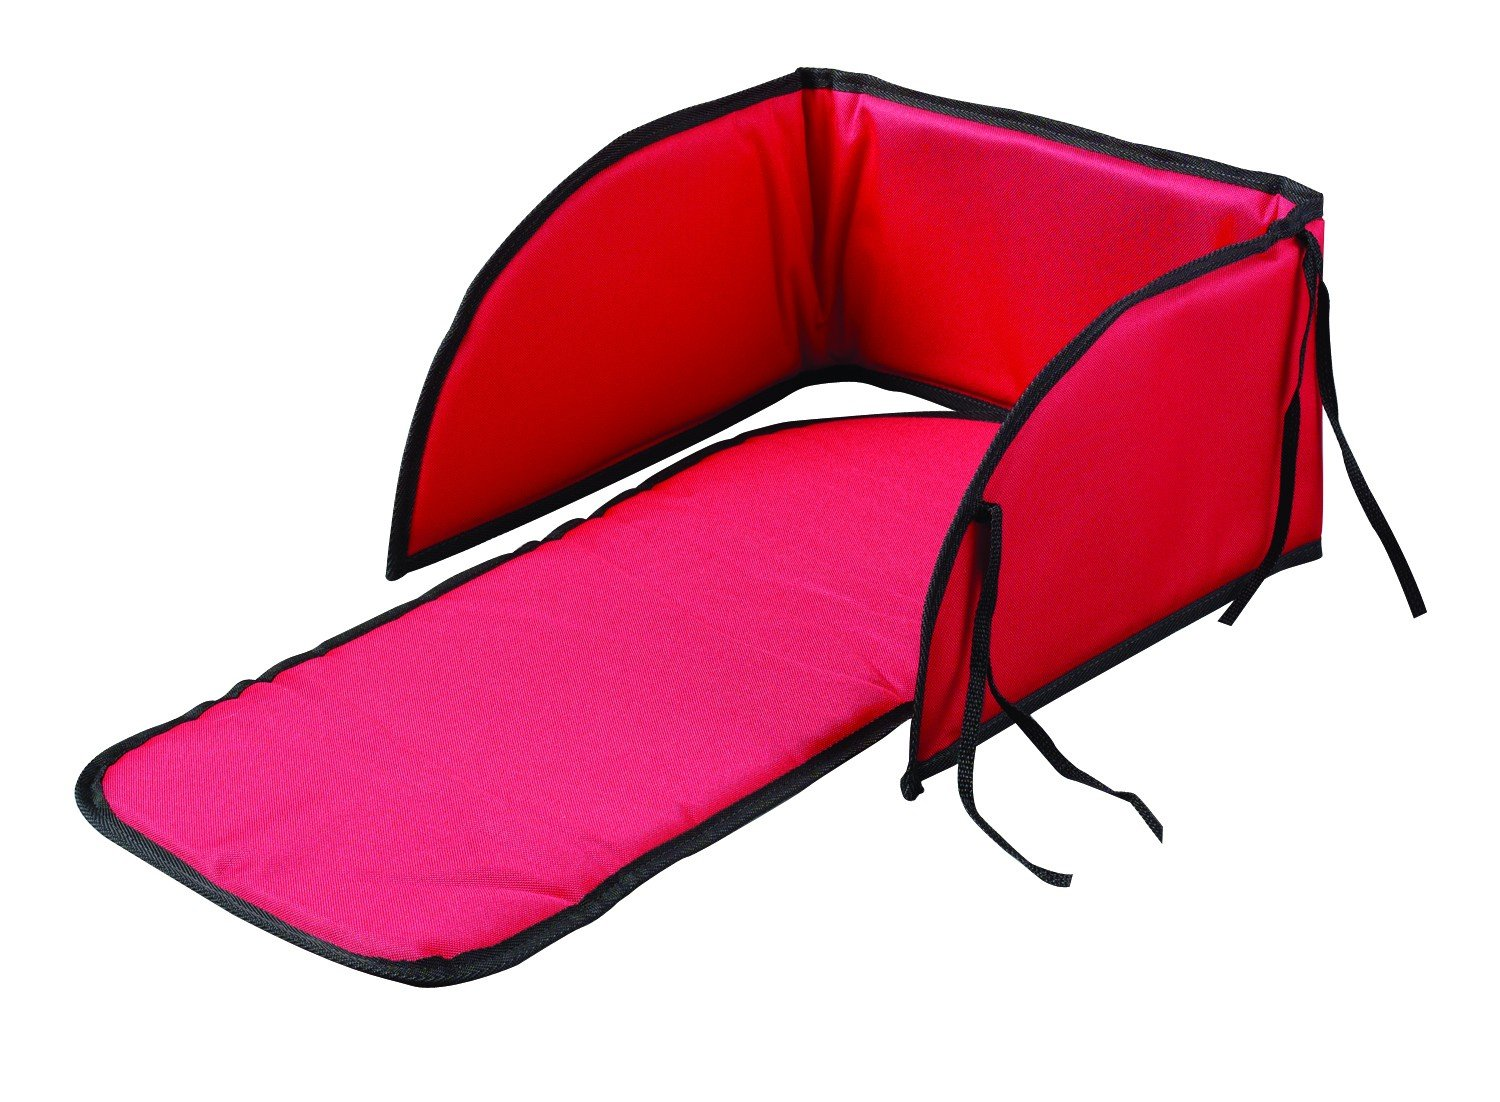 Flexible Flyer Pad for Baby Sleigh